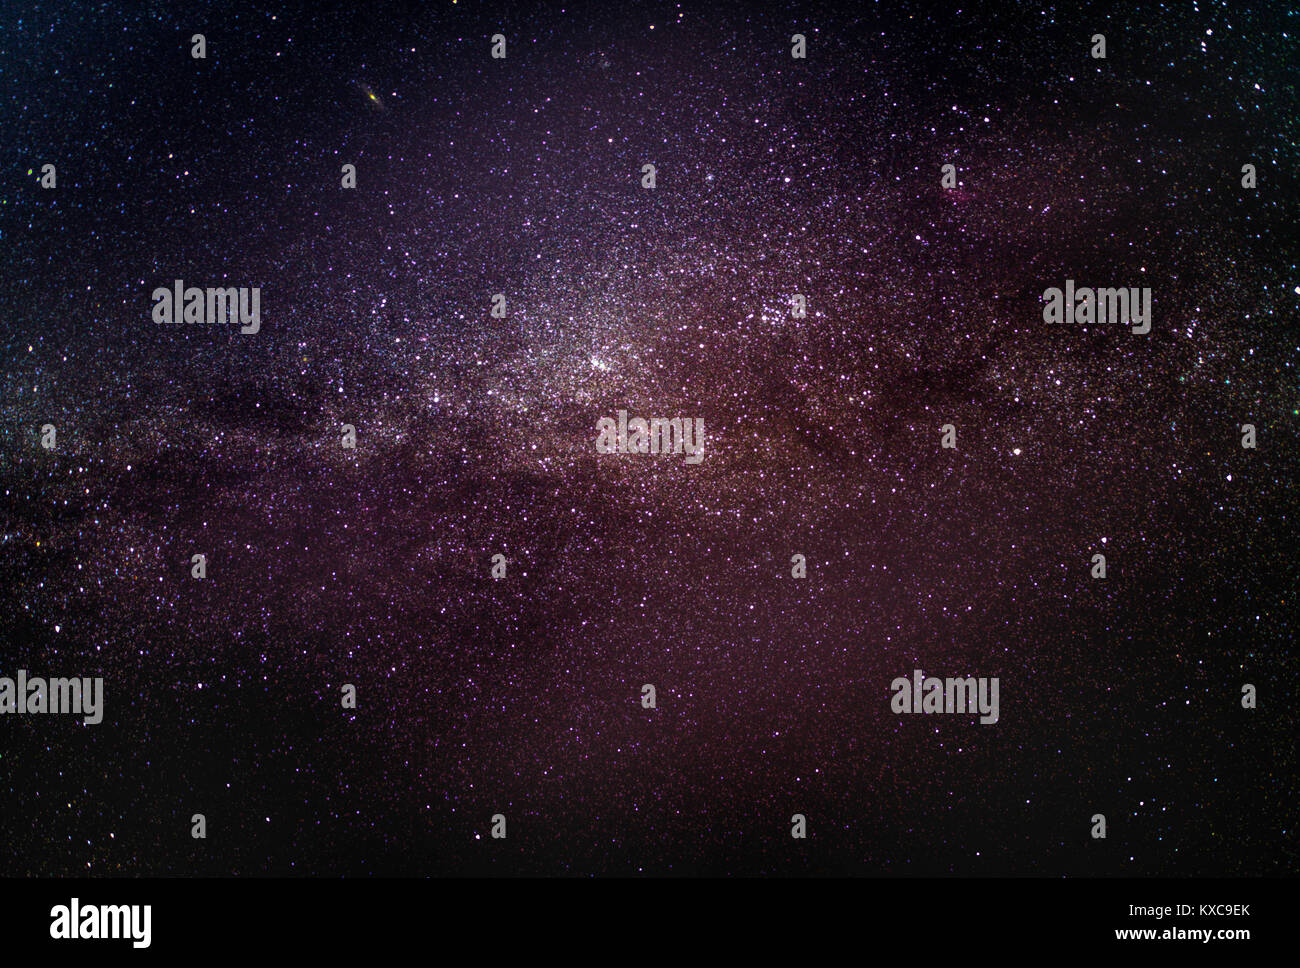 Milky Way galaxy with stars and space dust in the universe - Stock Image